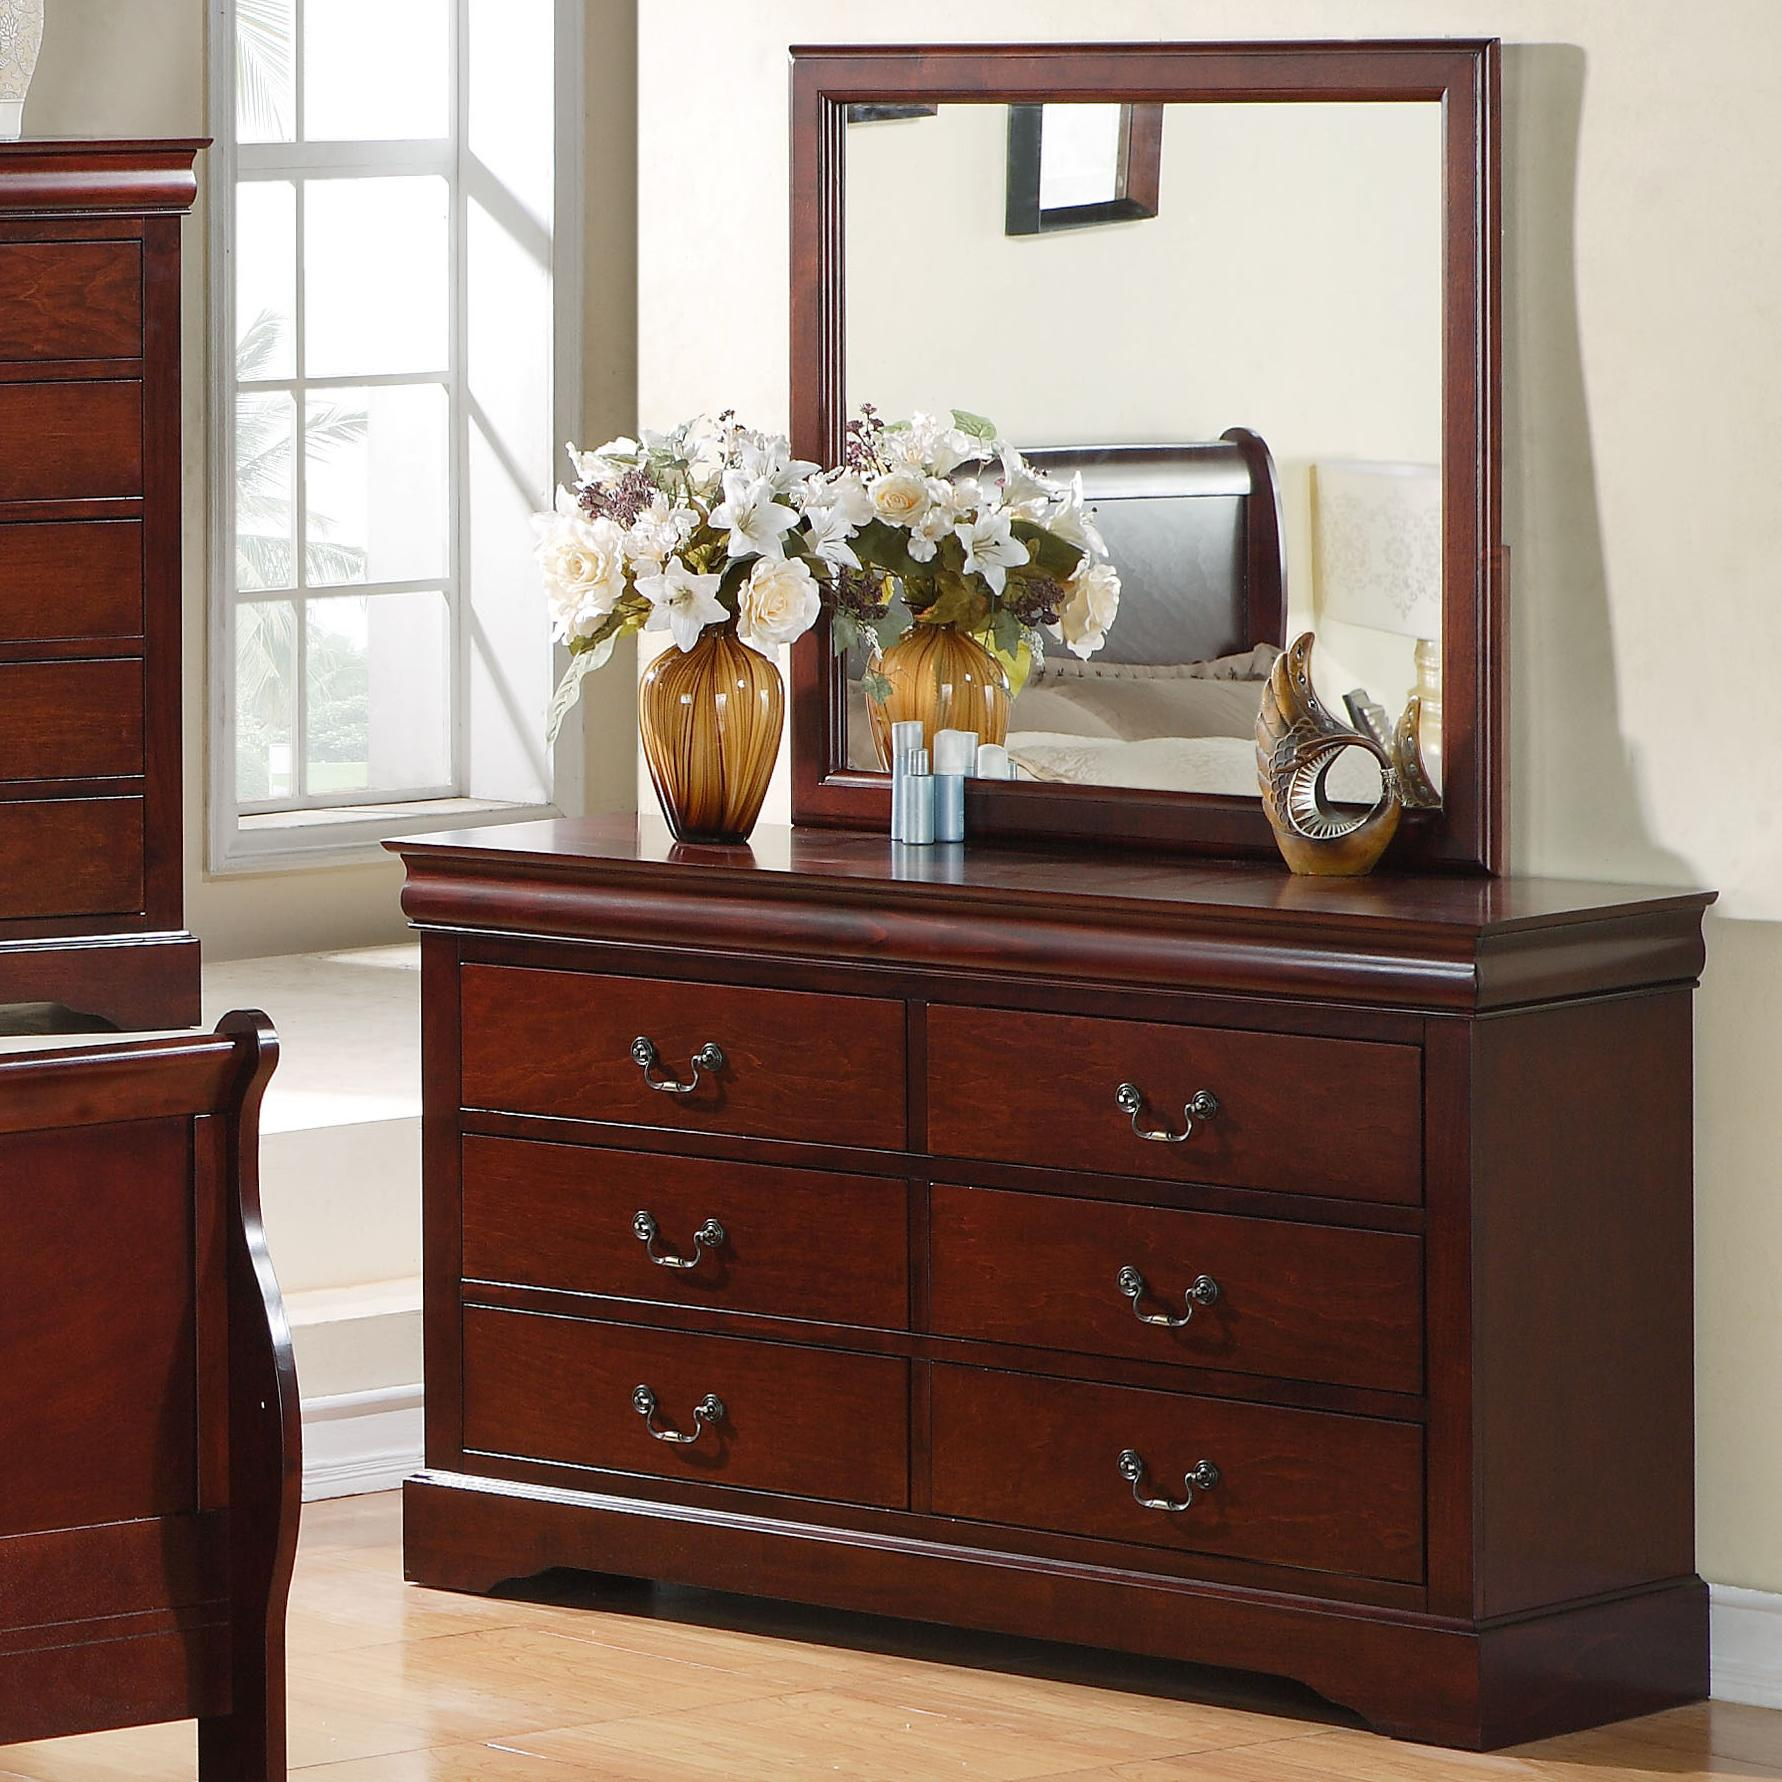 6 drawer dresser with mirror combination by standard 11700 | products 2fstandard furniture 2fcolor 2flewiston 20 201168897816 80409 2b80408 b